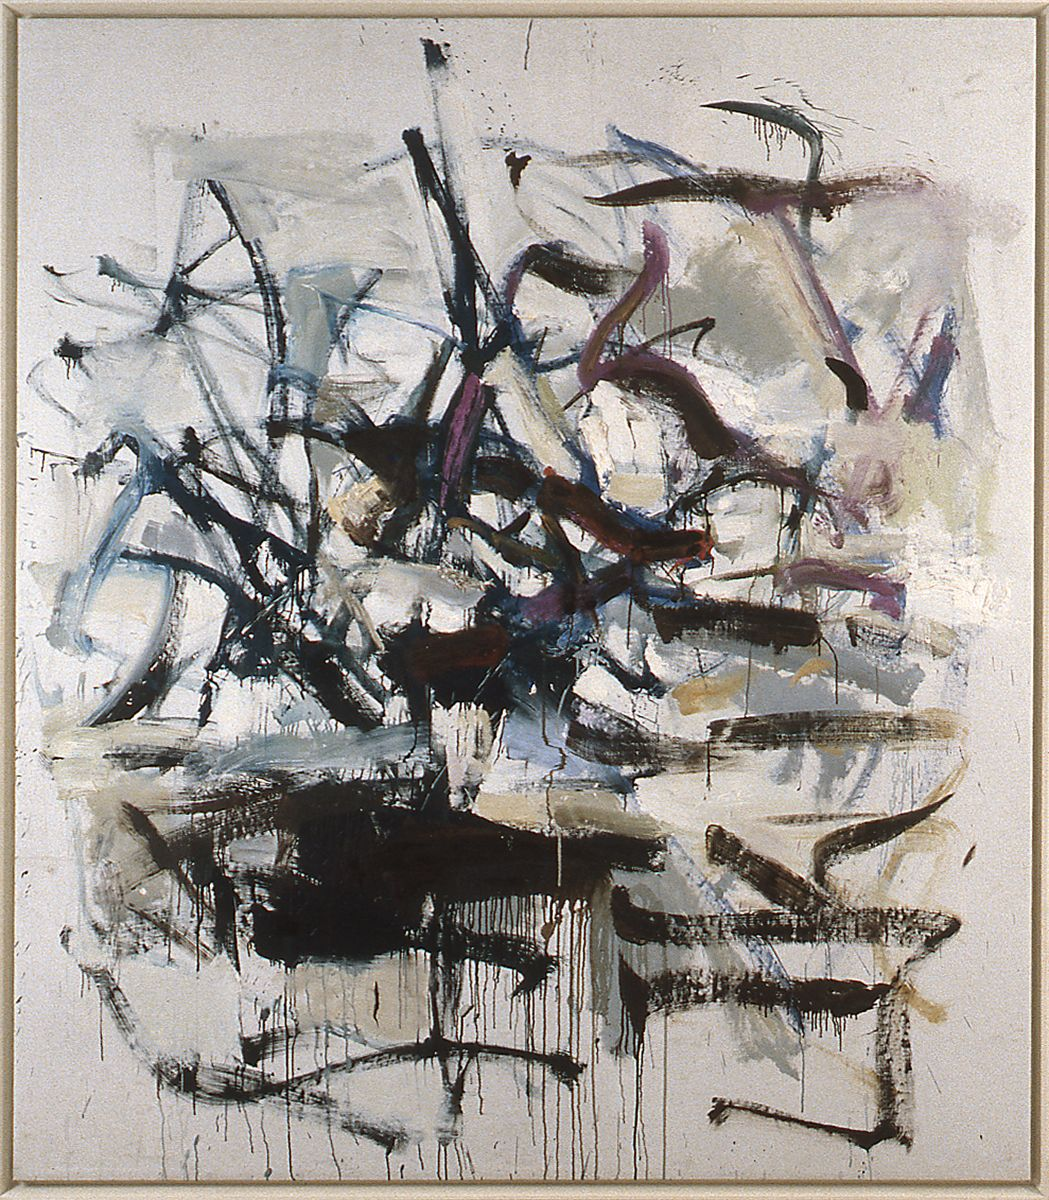 Joan Mitchell, Untitled, 1985, oil on canvas, 77 3/4 x 68 inches